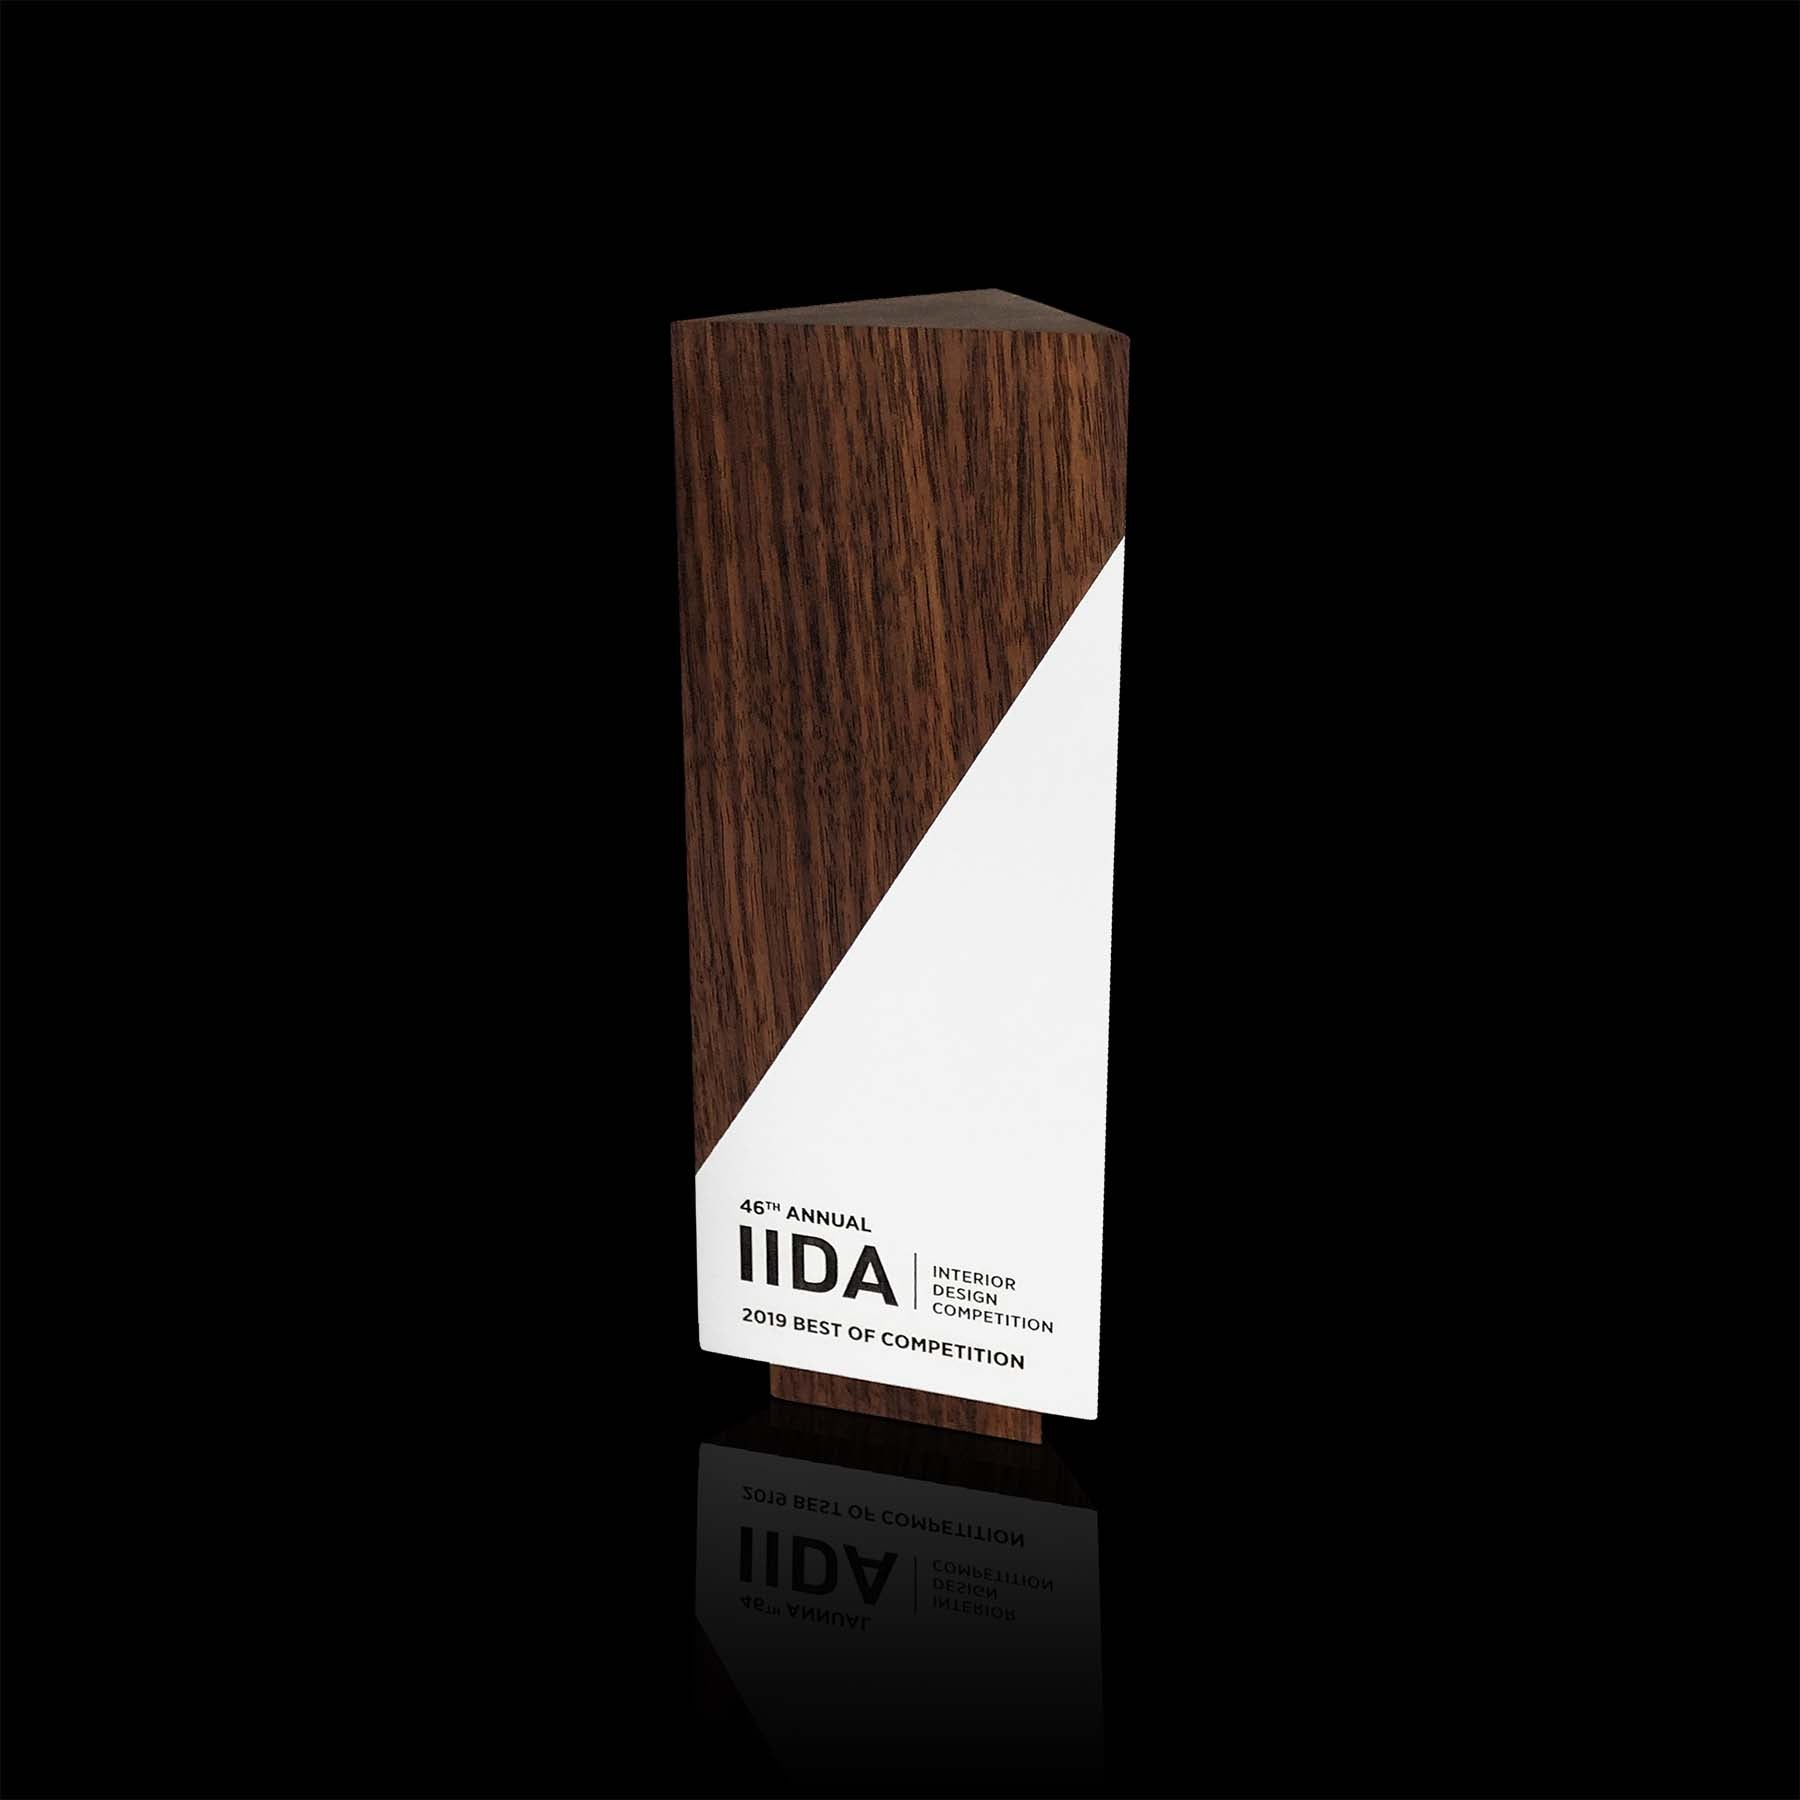 Wooden Walnut Geometric Award Custom Engraved for IIDA, Interior Design Competition